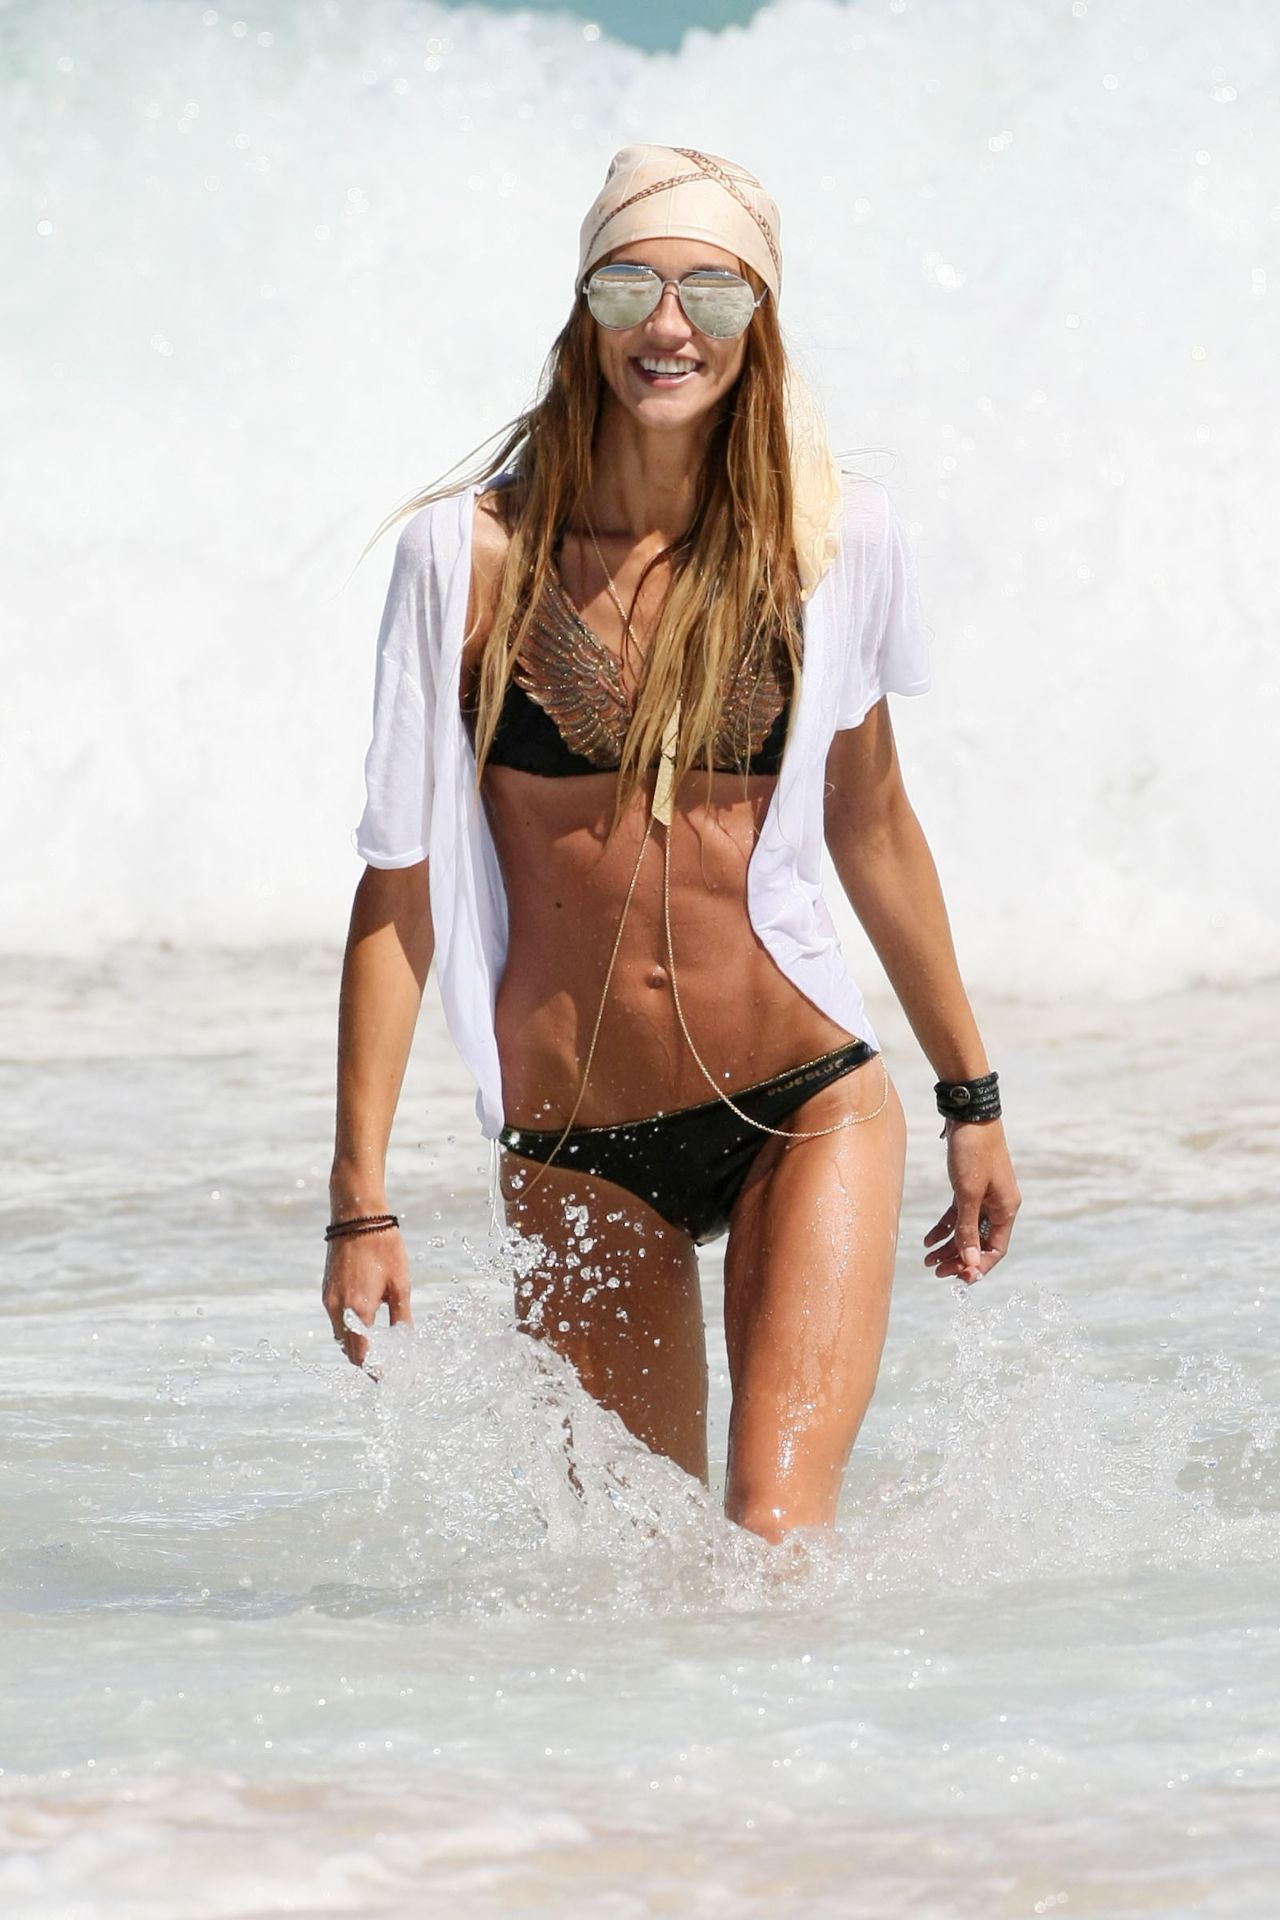 Sharni Vinson Bikini Photos - Cronulla Beach in Sydney - January 2014